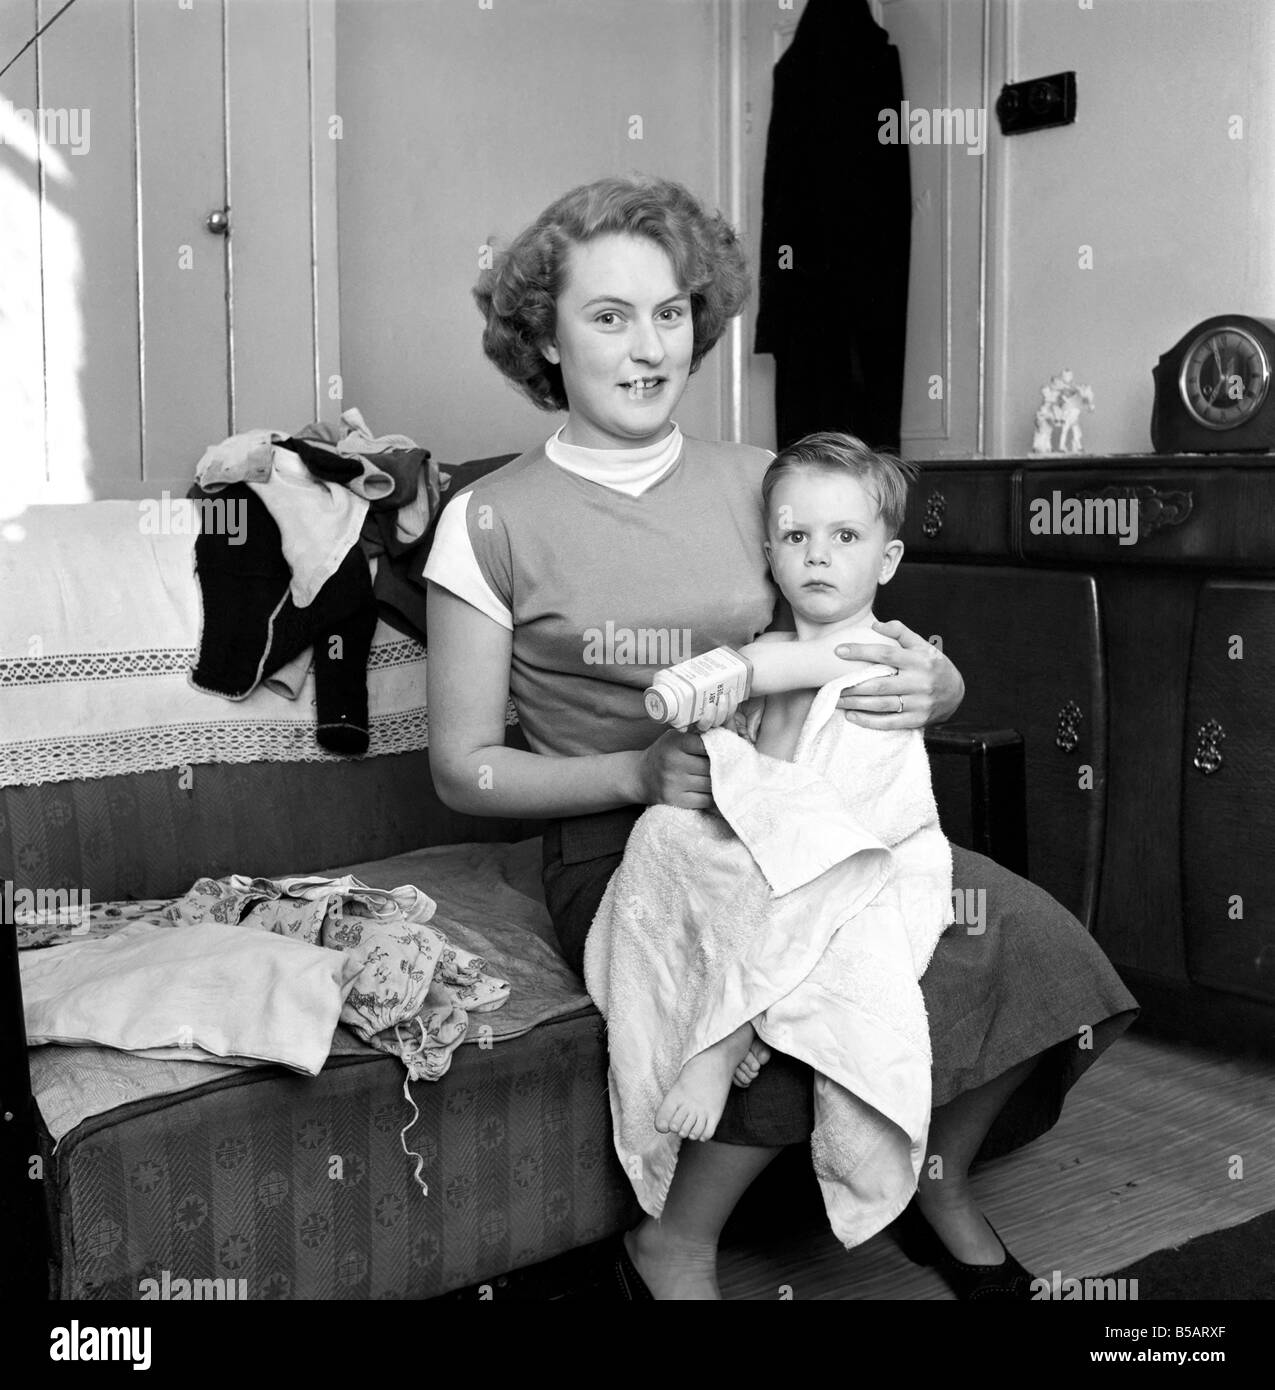 Family life: Mrs. Hull with her son after his bath. 1954 A160 - Stock Image